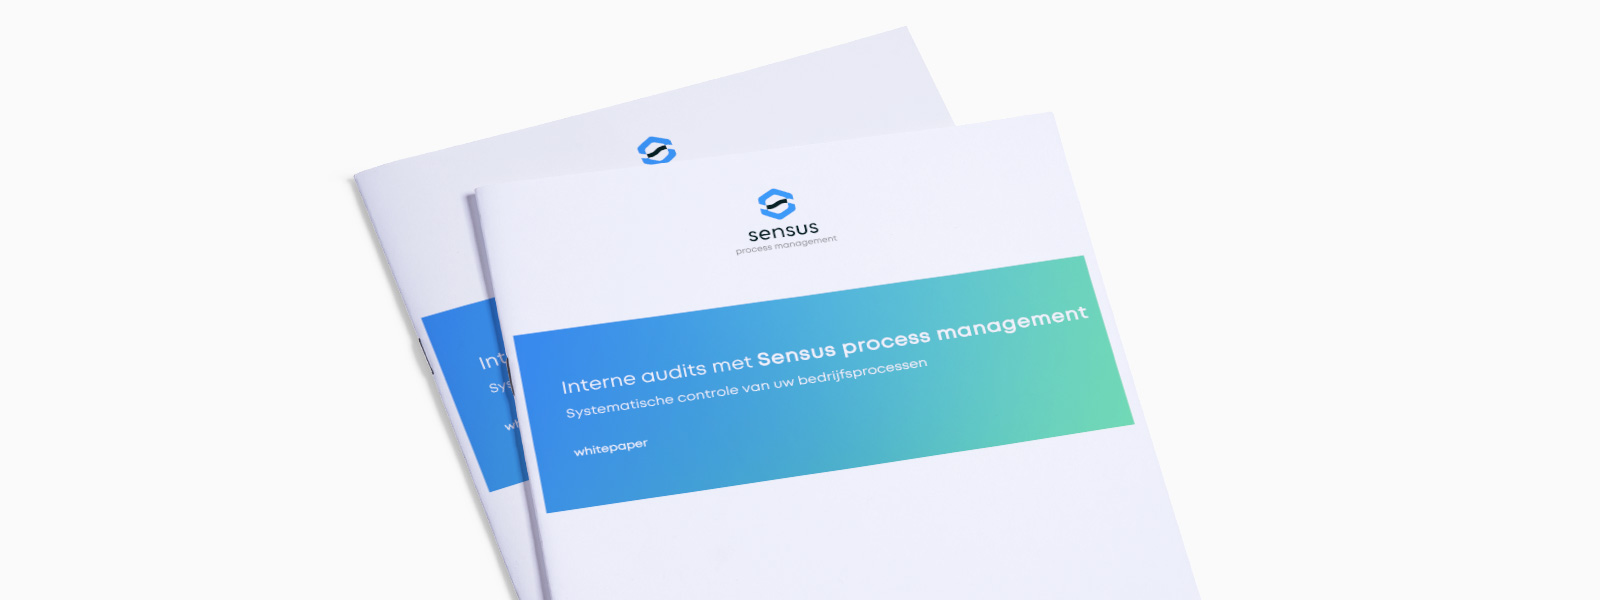 Sensus whitepaper HRM enquete